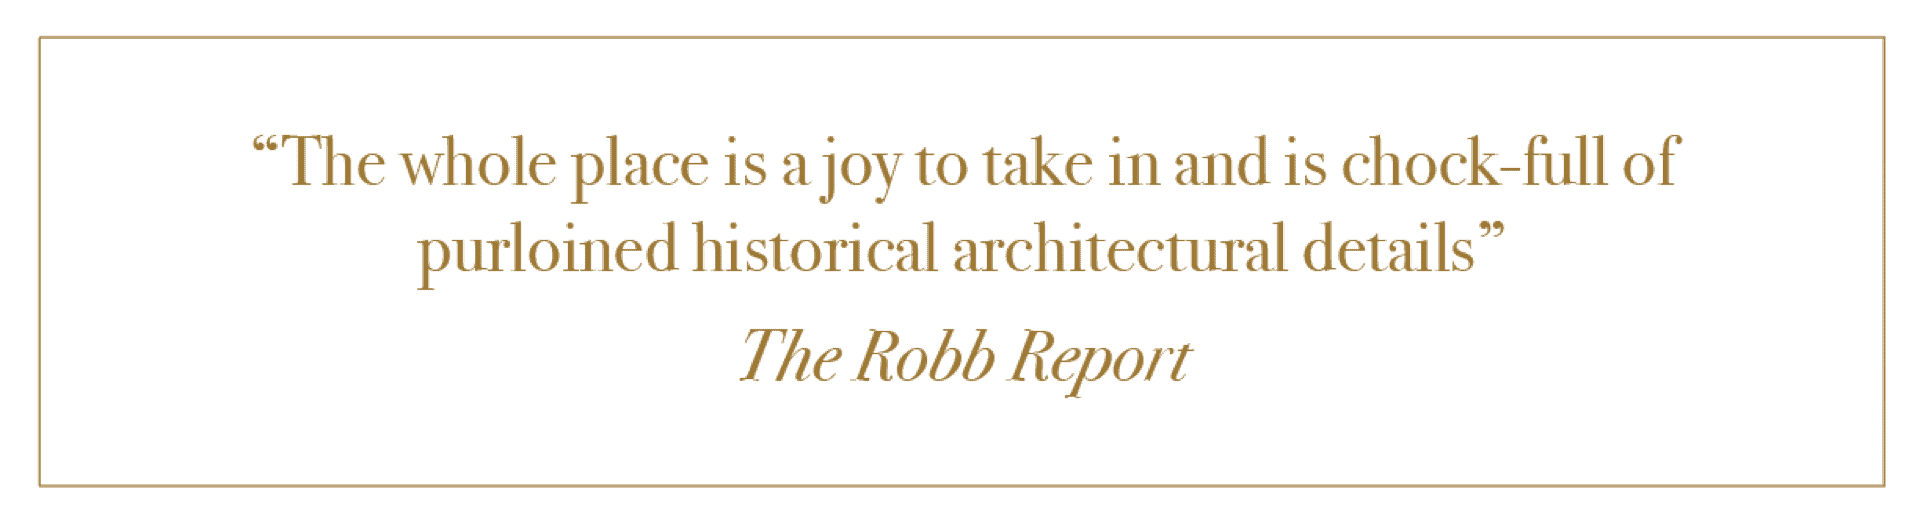 A Review from The Robb Report